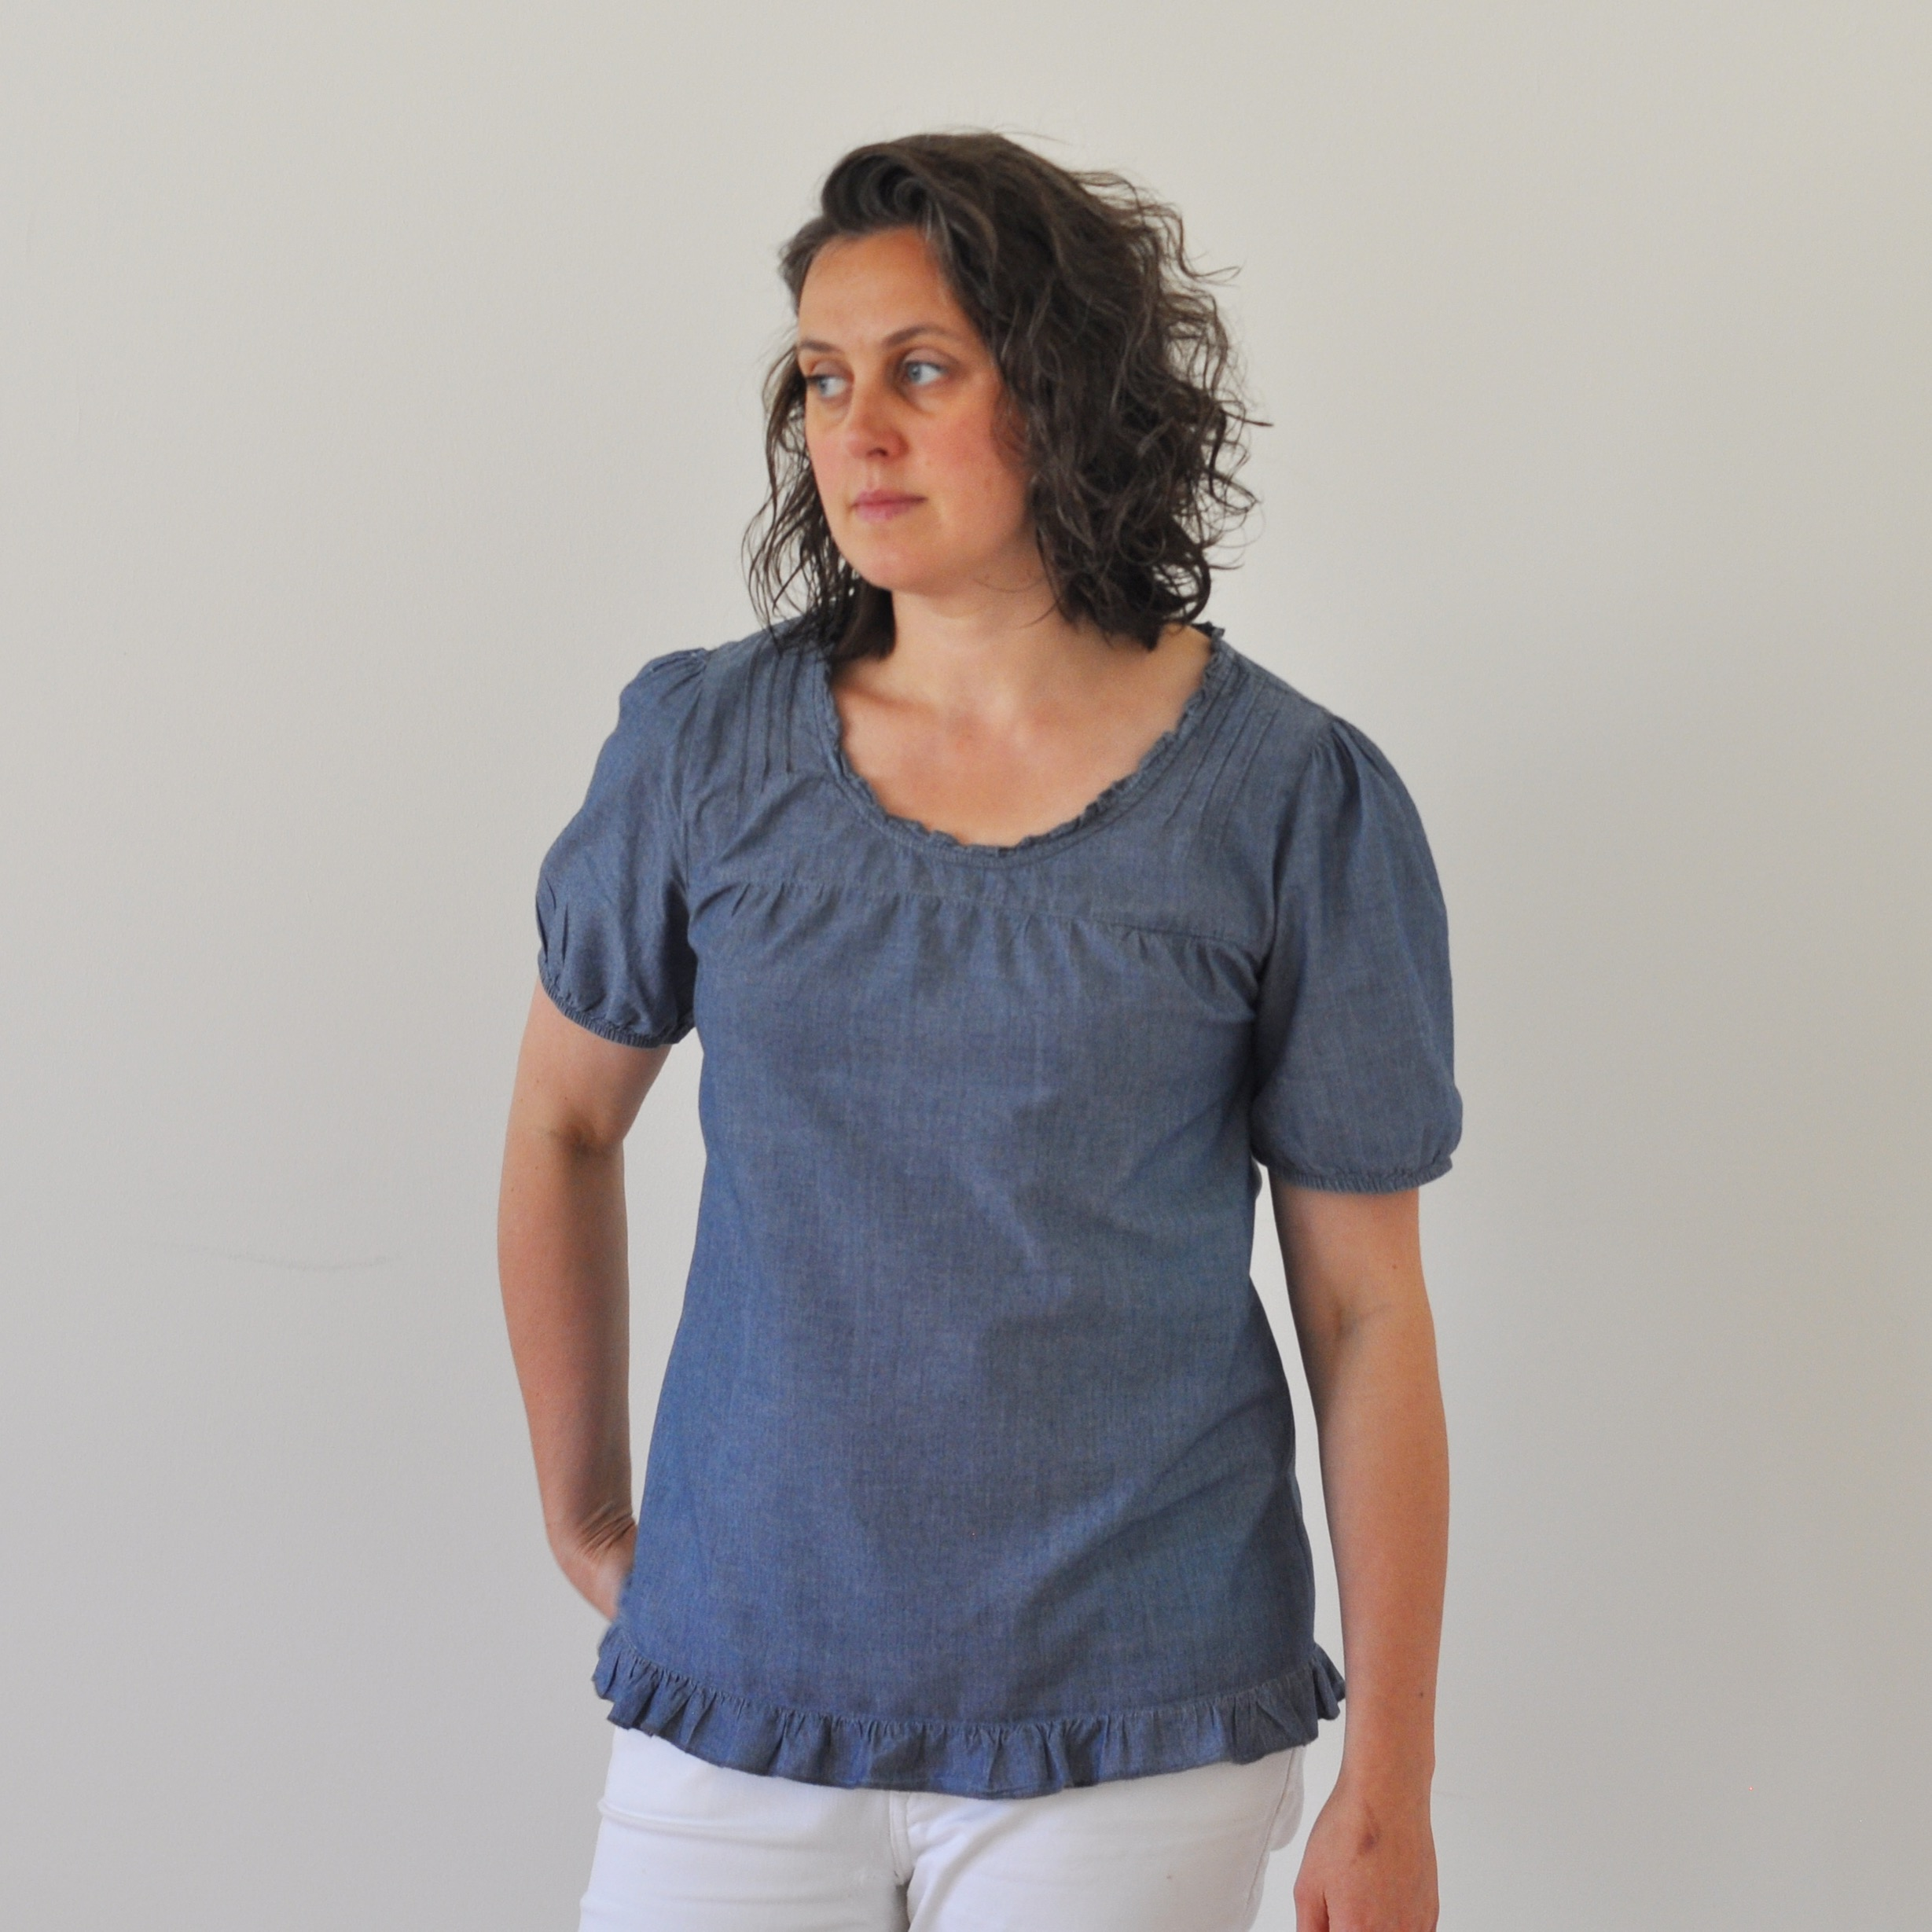 Refashioned thrift store shirt